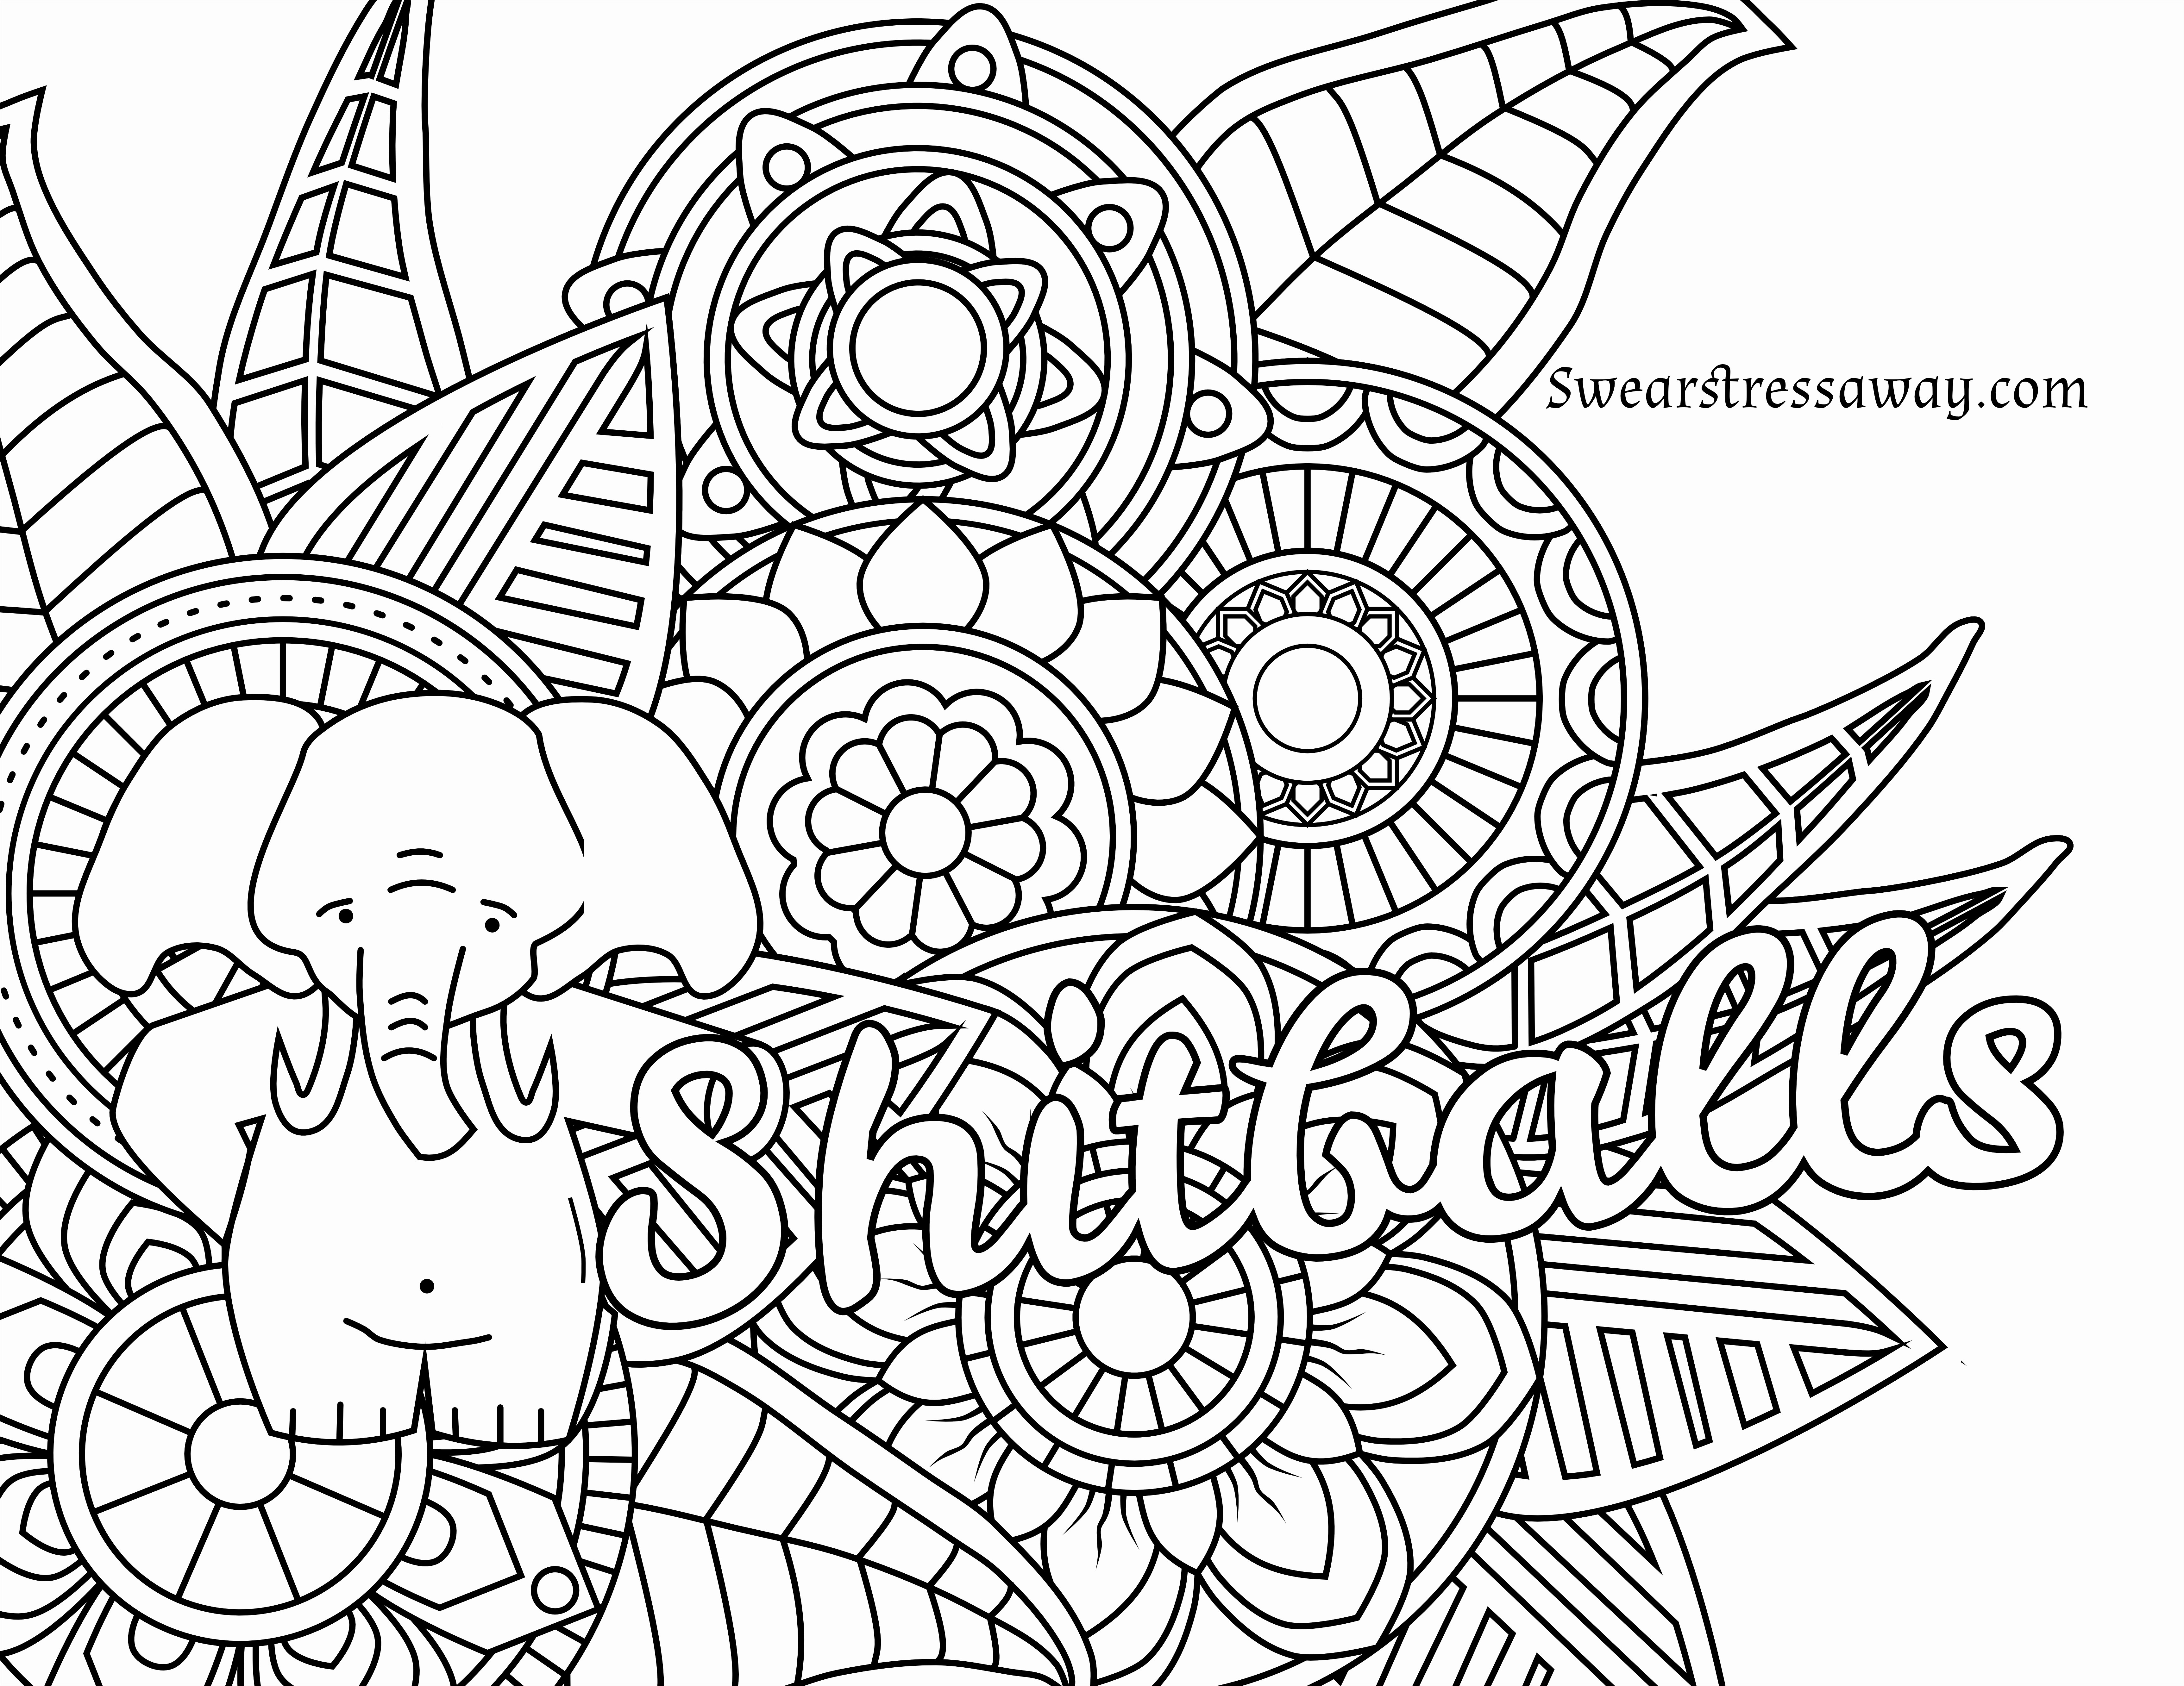 Fall Coloring Pages For Adults Fall Coloring Books Adult Themed For Adults Freedishdth